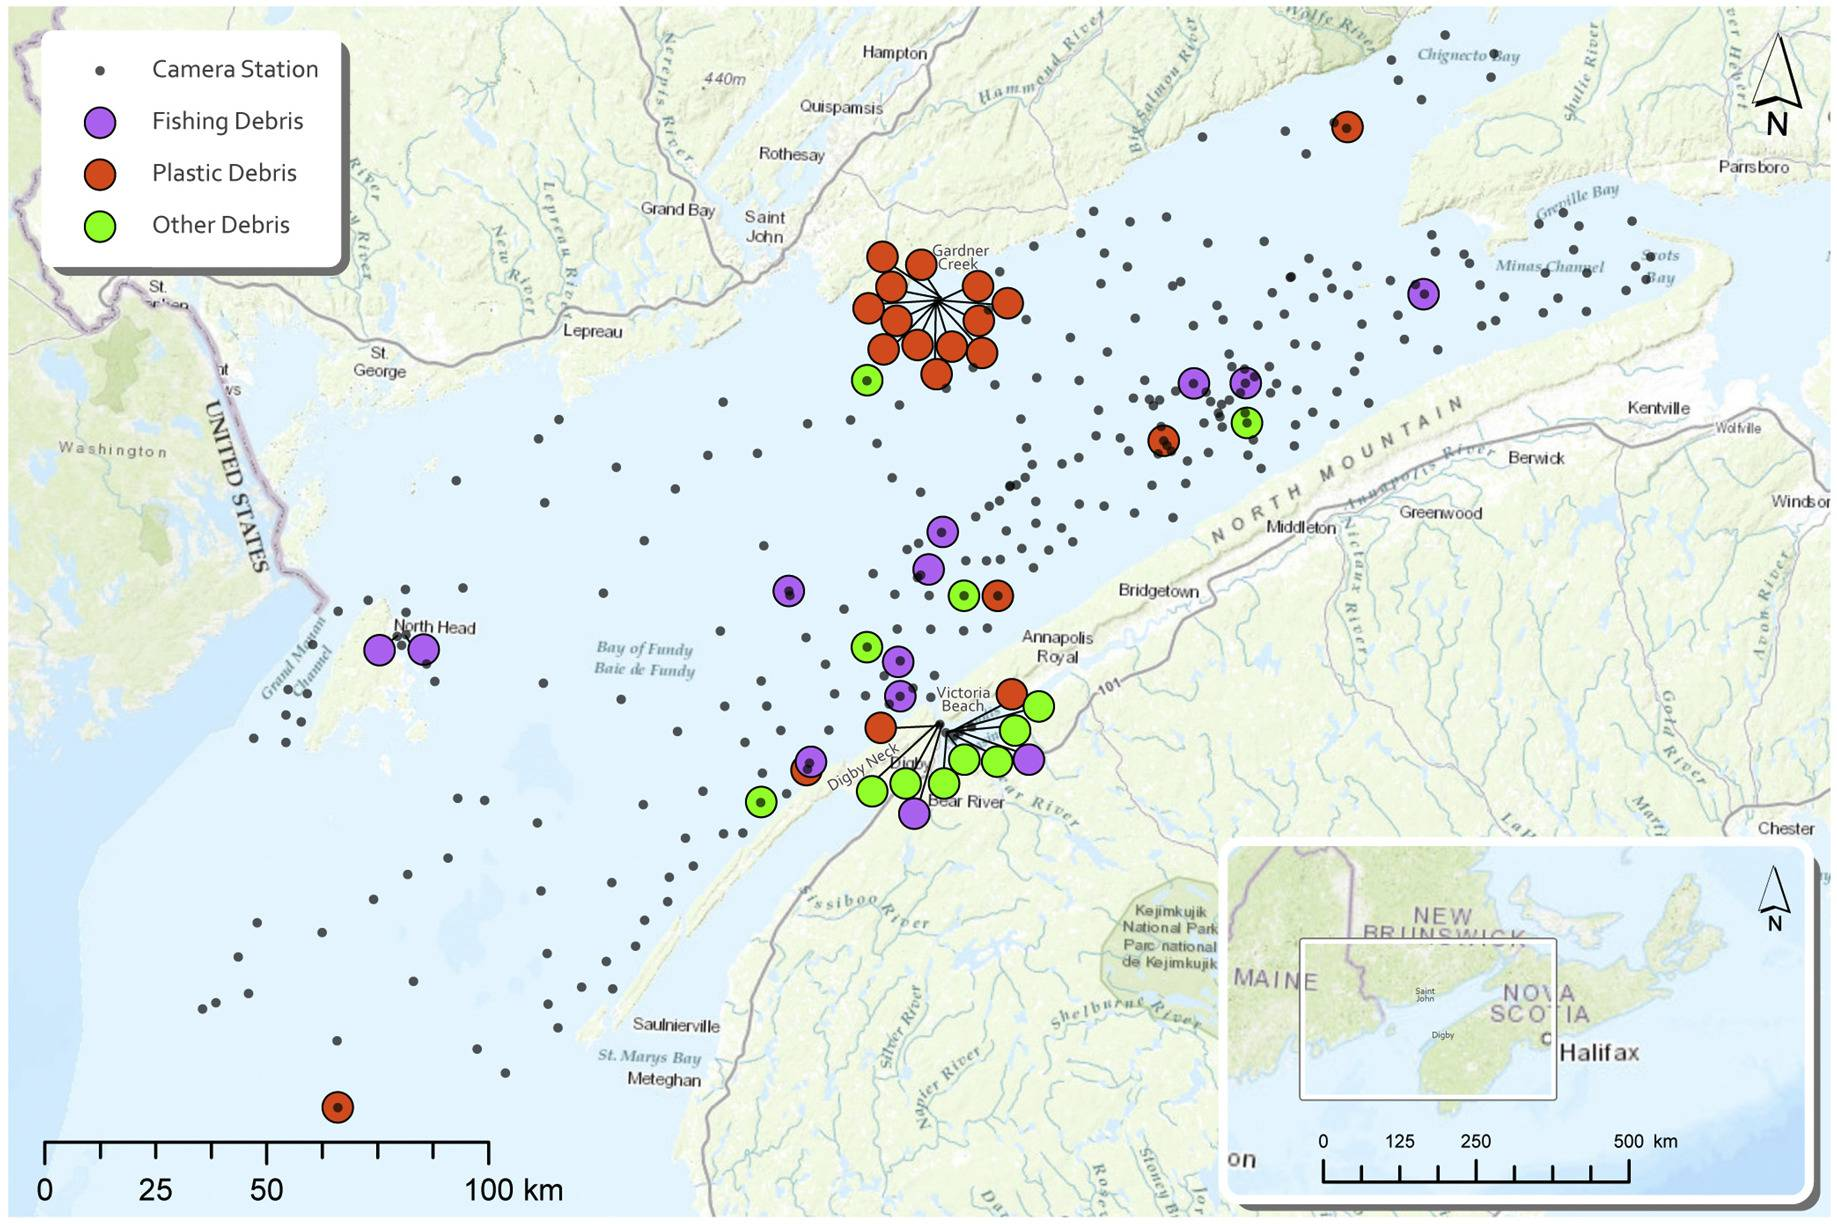 A distribution map shows hotspots of pollution on the bottom of the Bay of Fundy. (Applied Oceans Research Group at the Nova Scotia Community College and Fisheries and Oceans Canada)